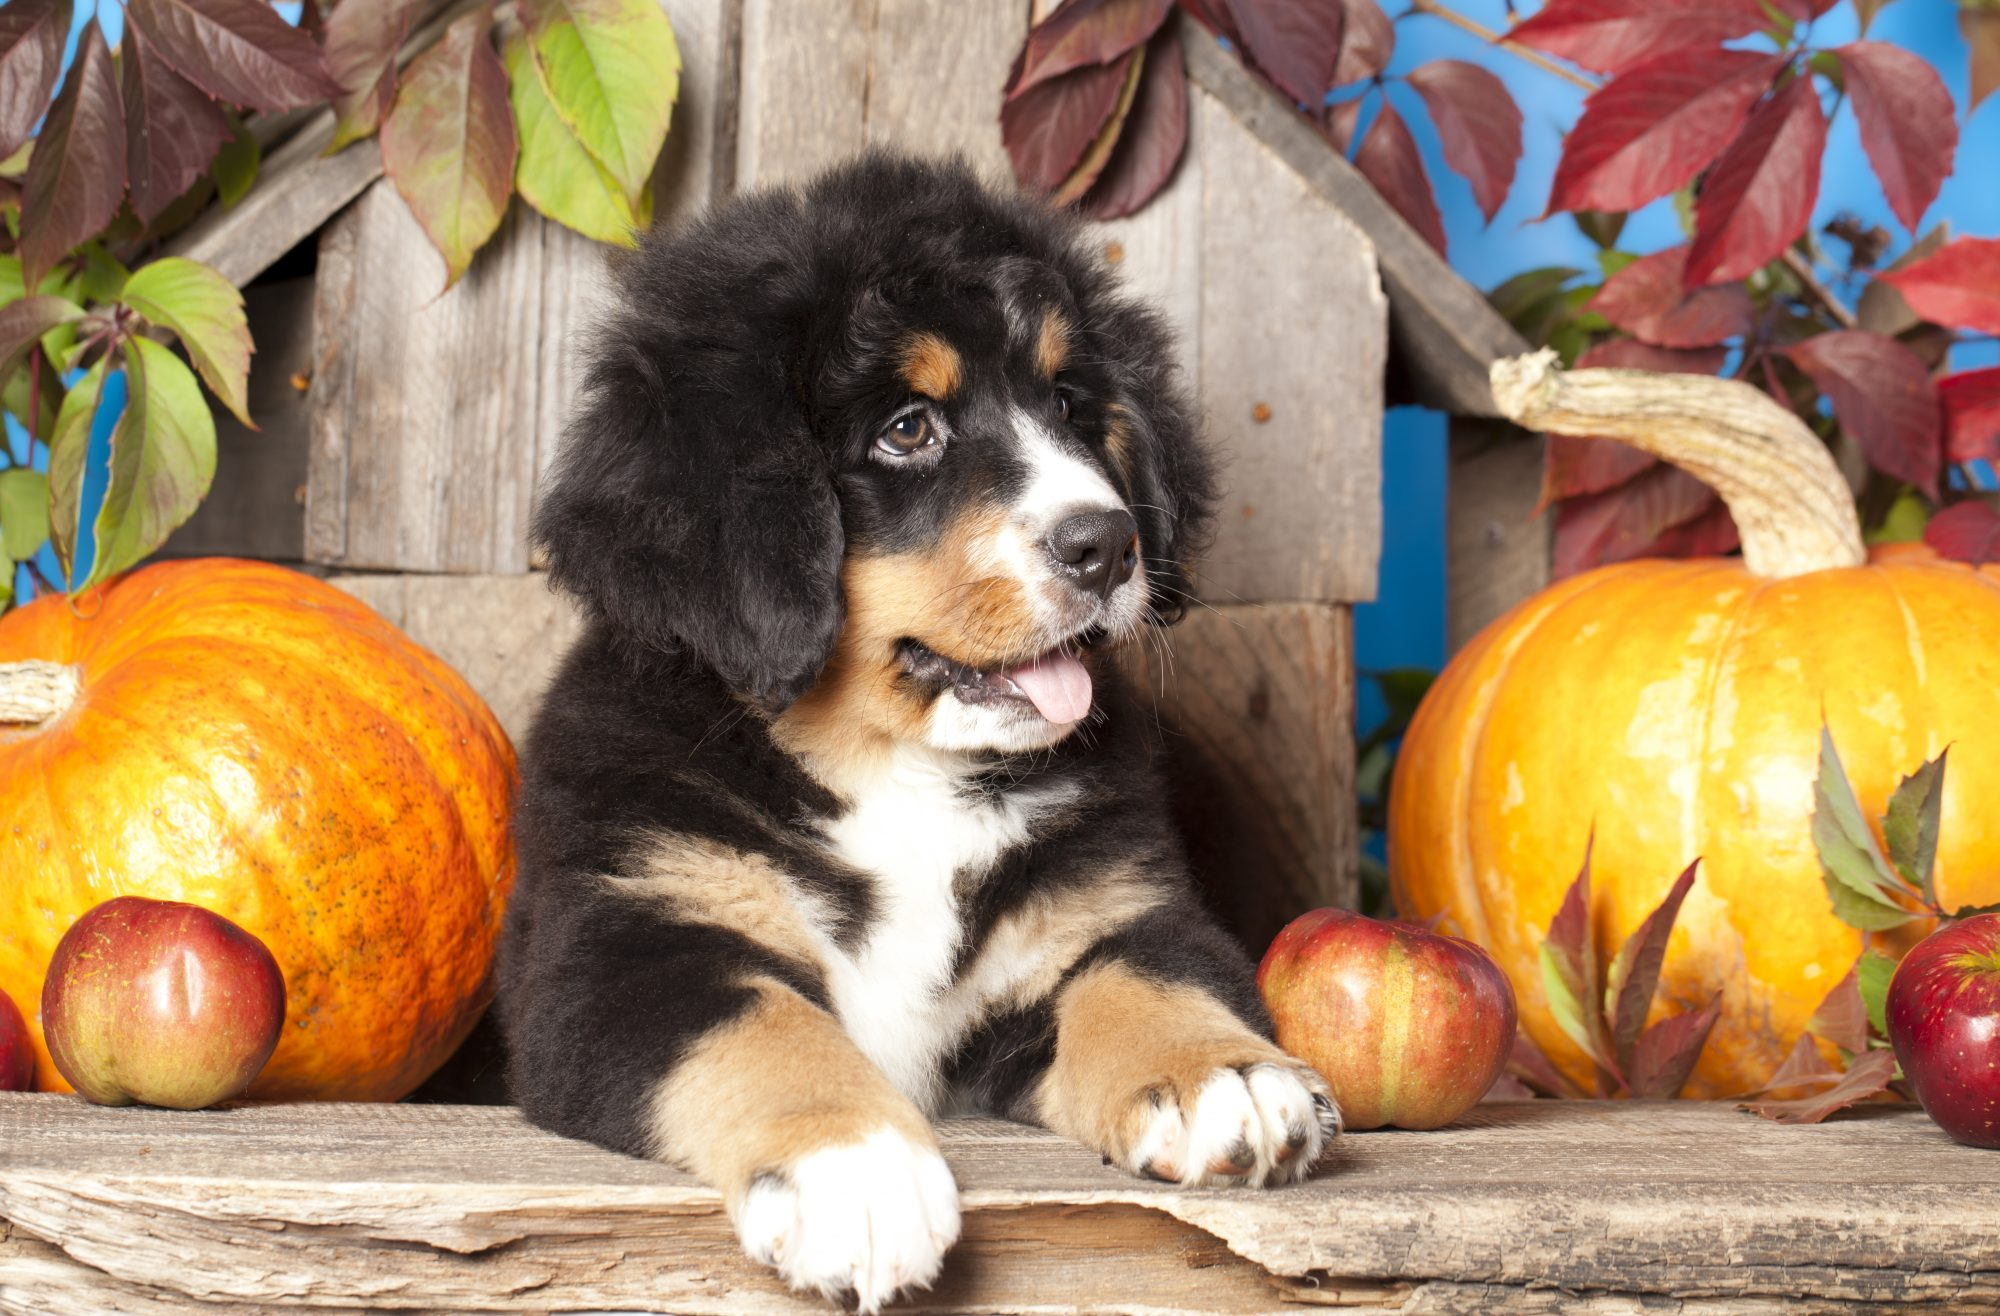 Puppy with Pumpkins